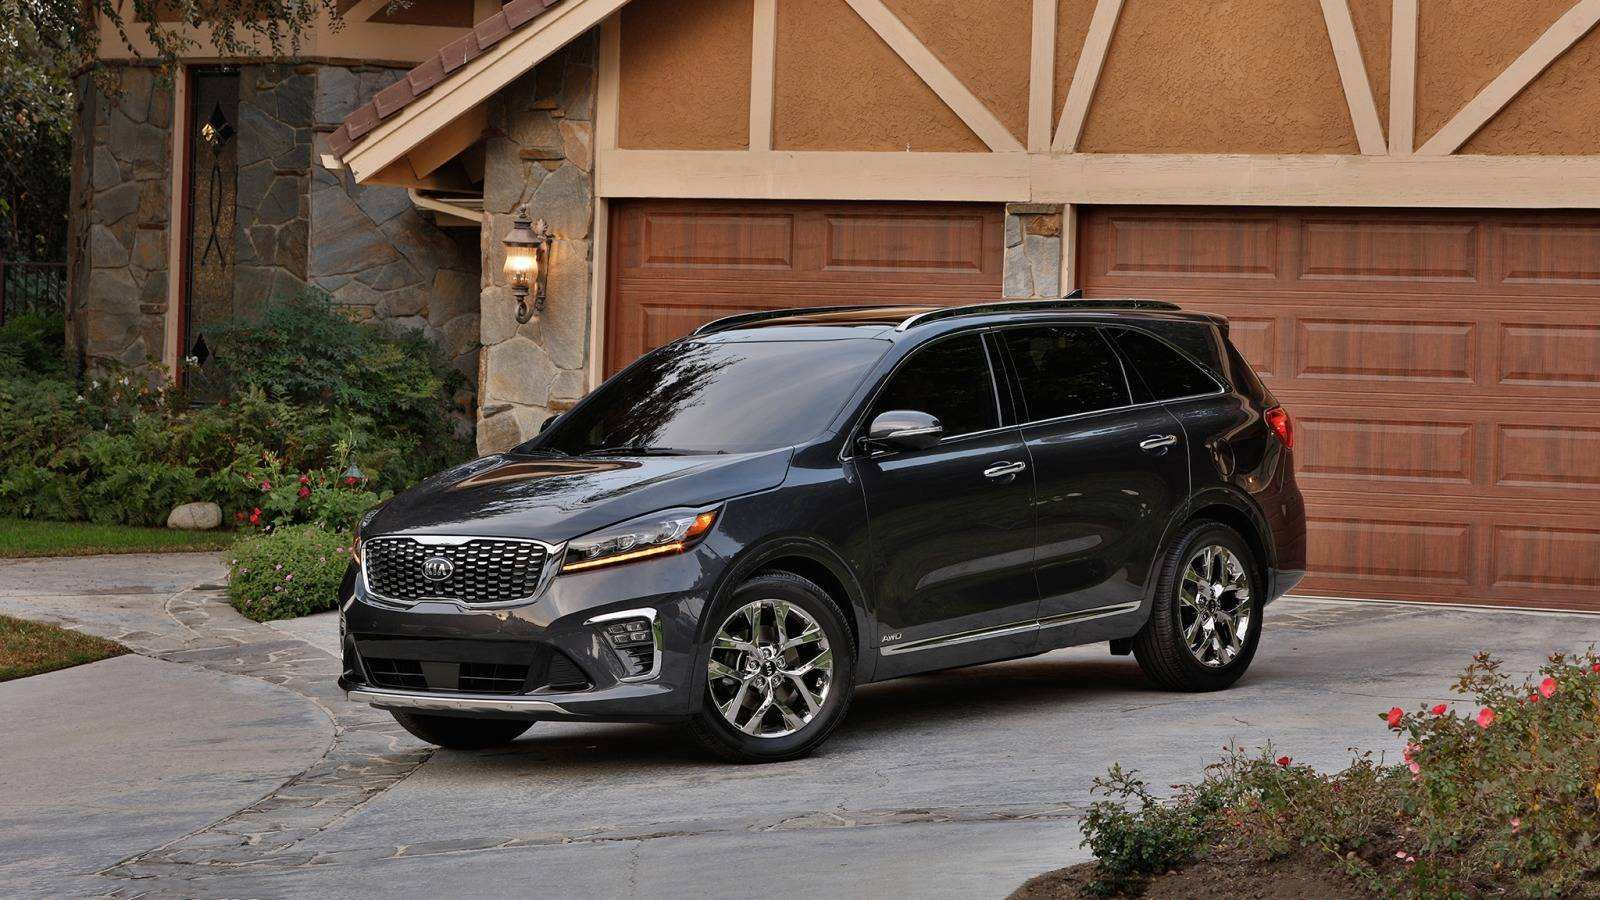 69 New 2019 Kia Sorento Price Picture